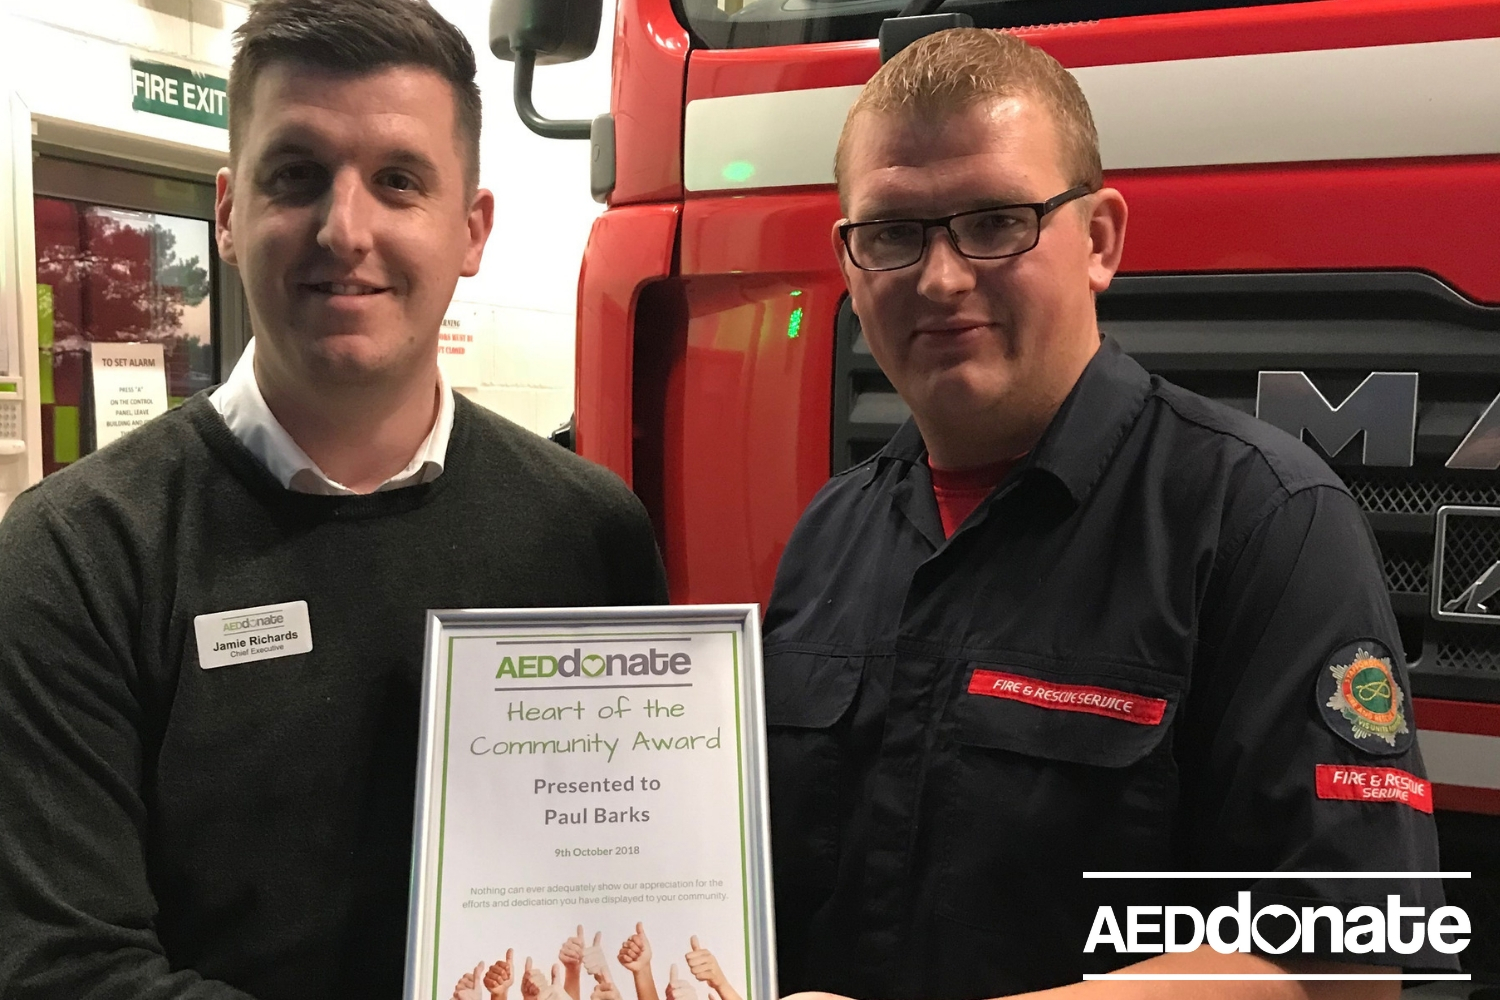 Lifesaver Paul Barks receives AEDdonate Certificate of Special Recognition